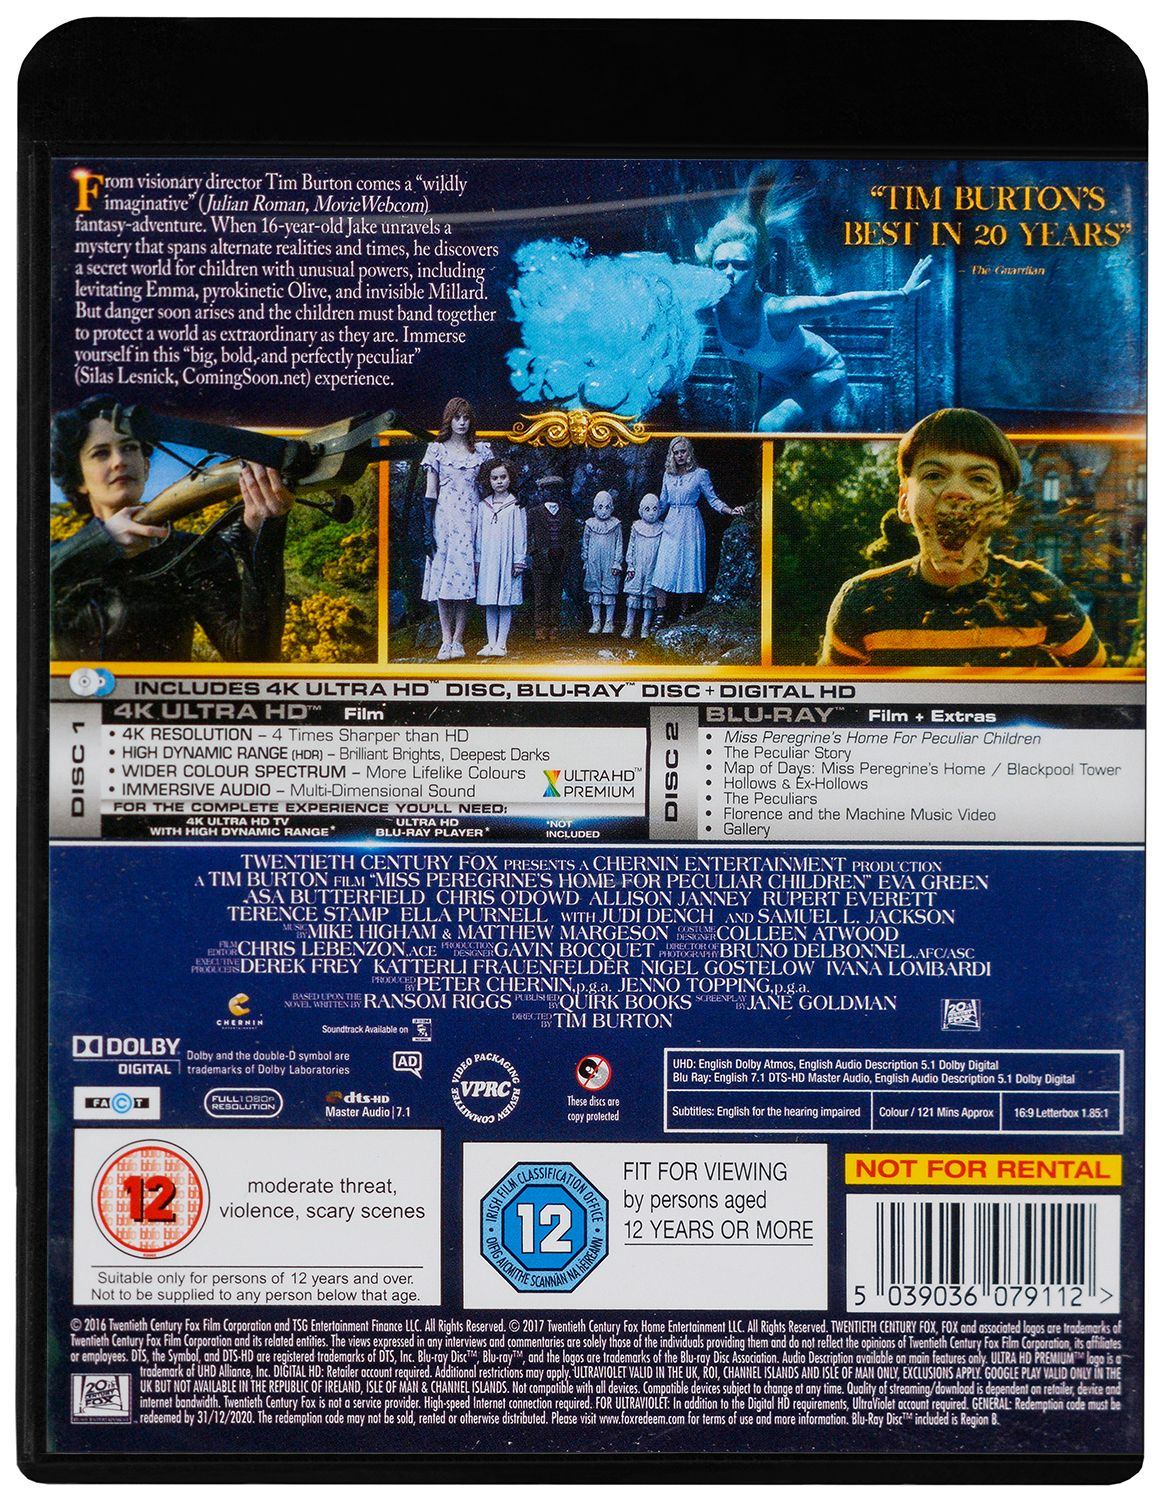 Miss Peregrine's Home For Peculiar Children 4K (Blu Ray) - 2